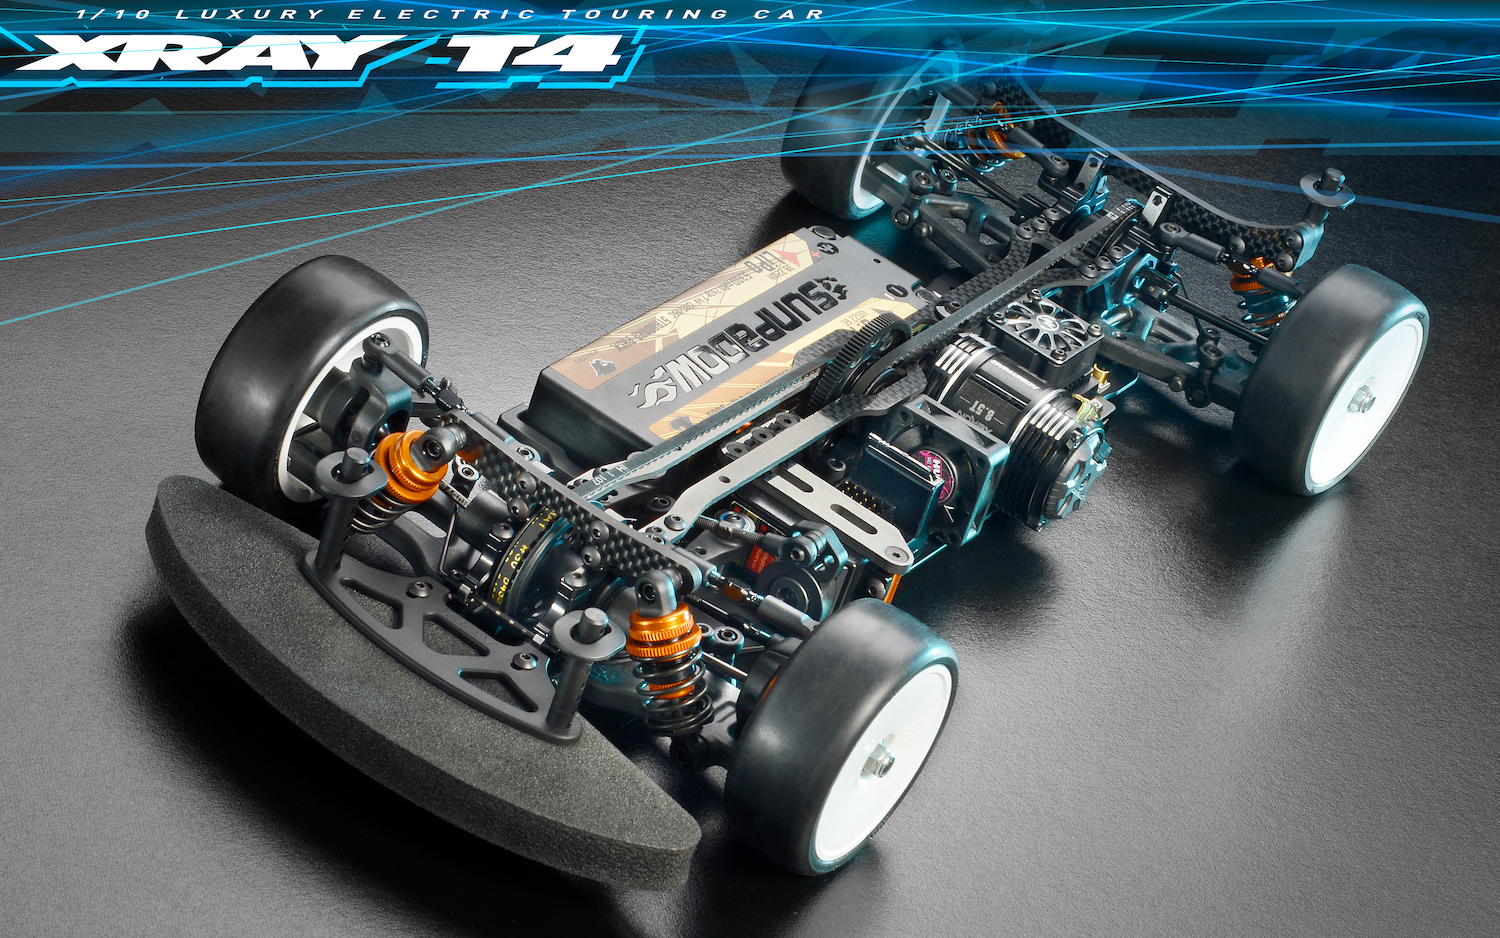 XRAY T4 2020 Specs 1/10 Luxury Electric Touring Car - Graphite Edition 300026